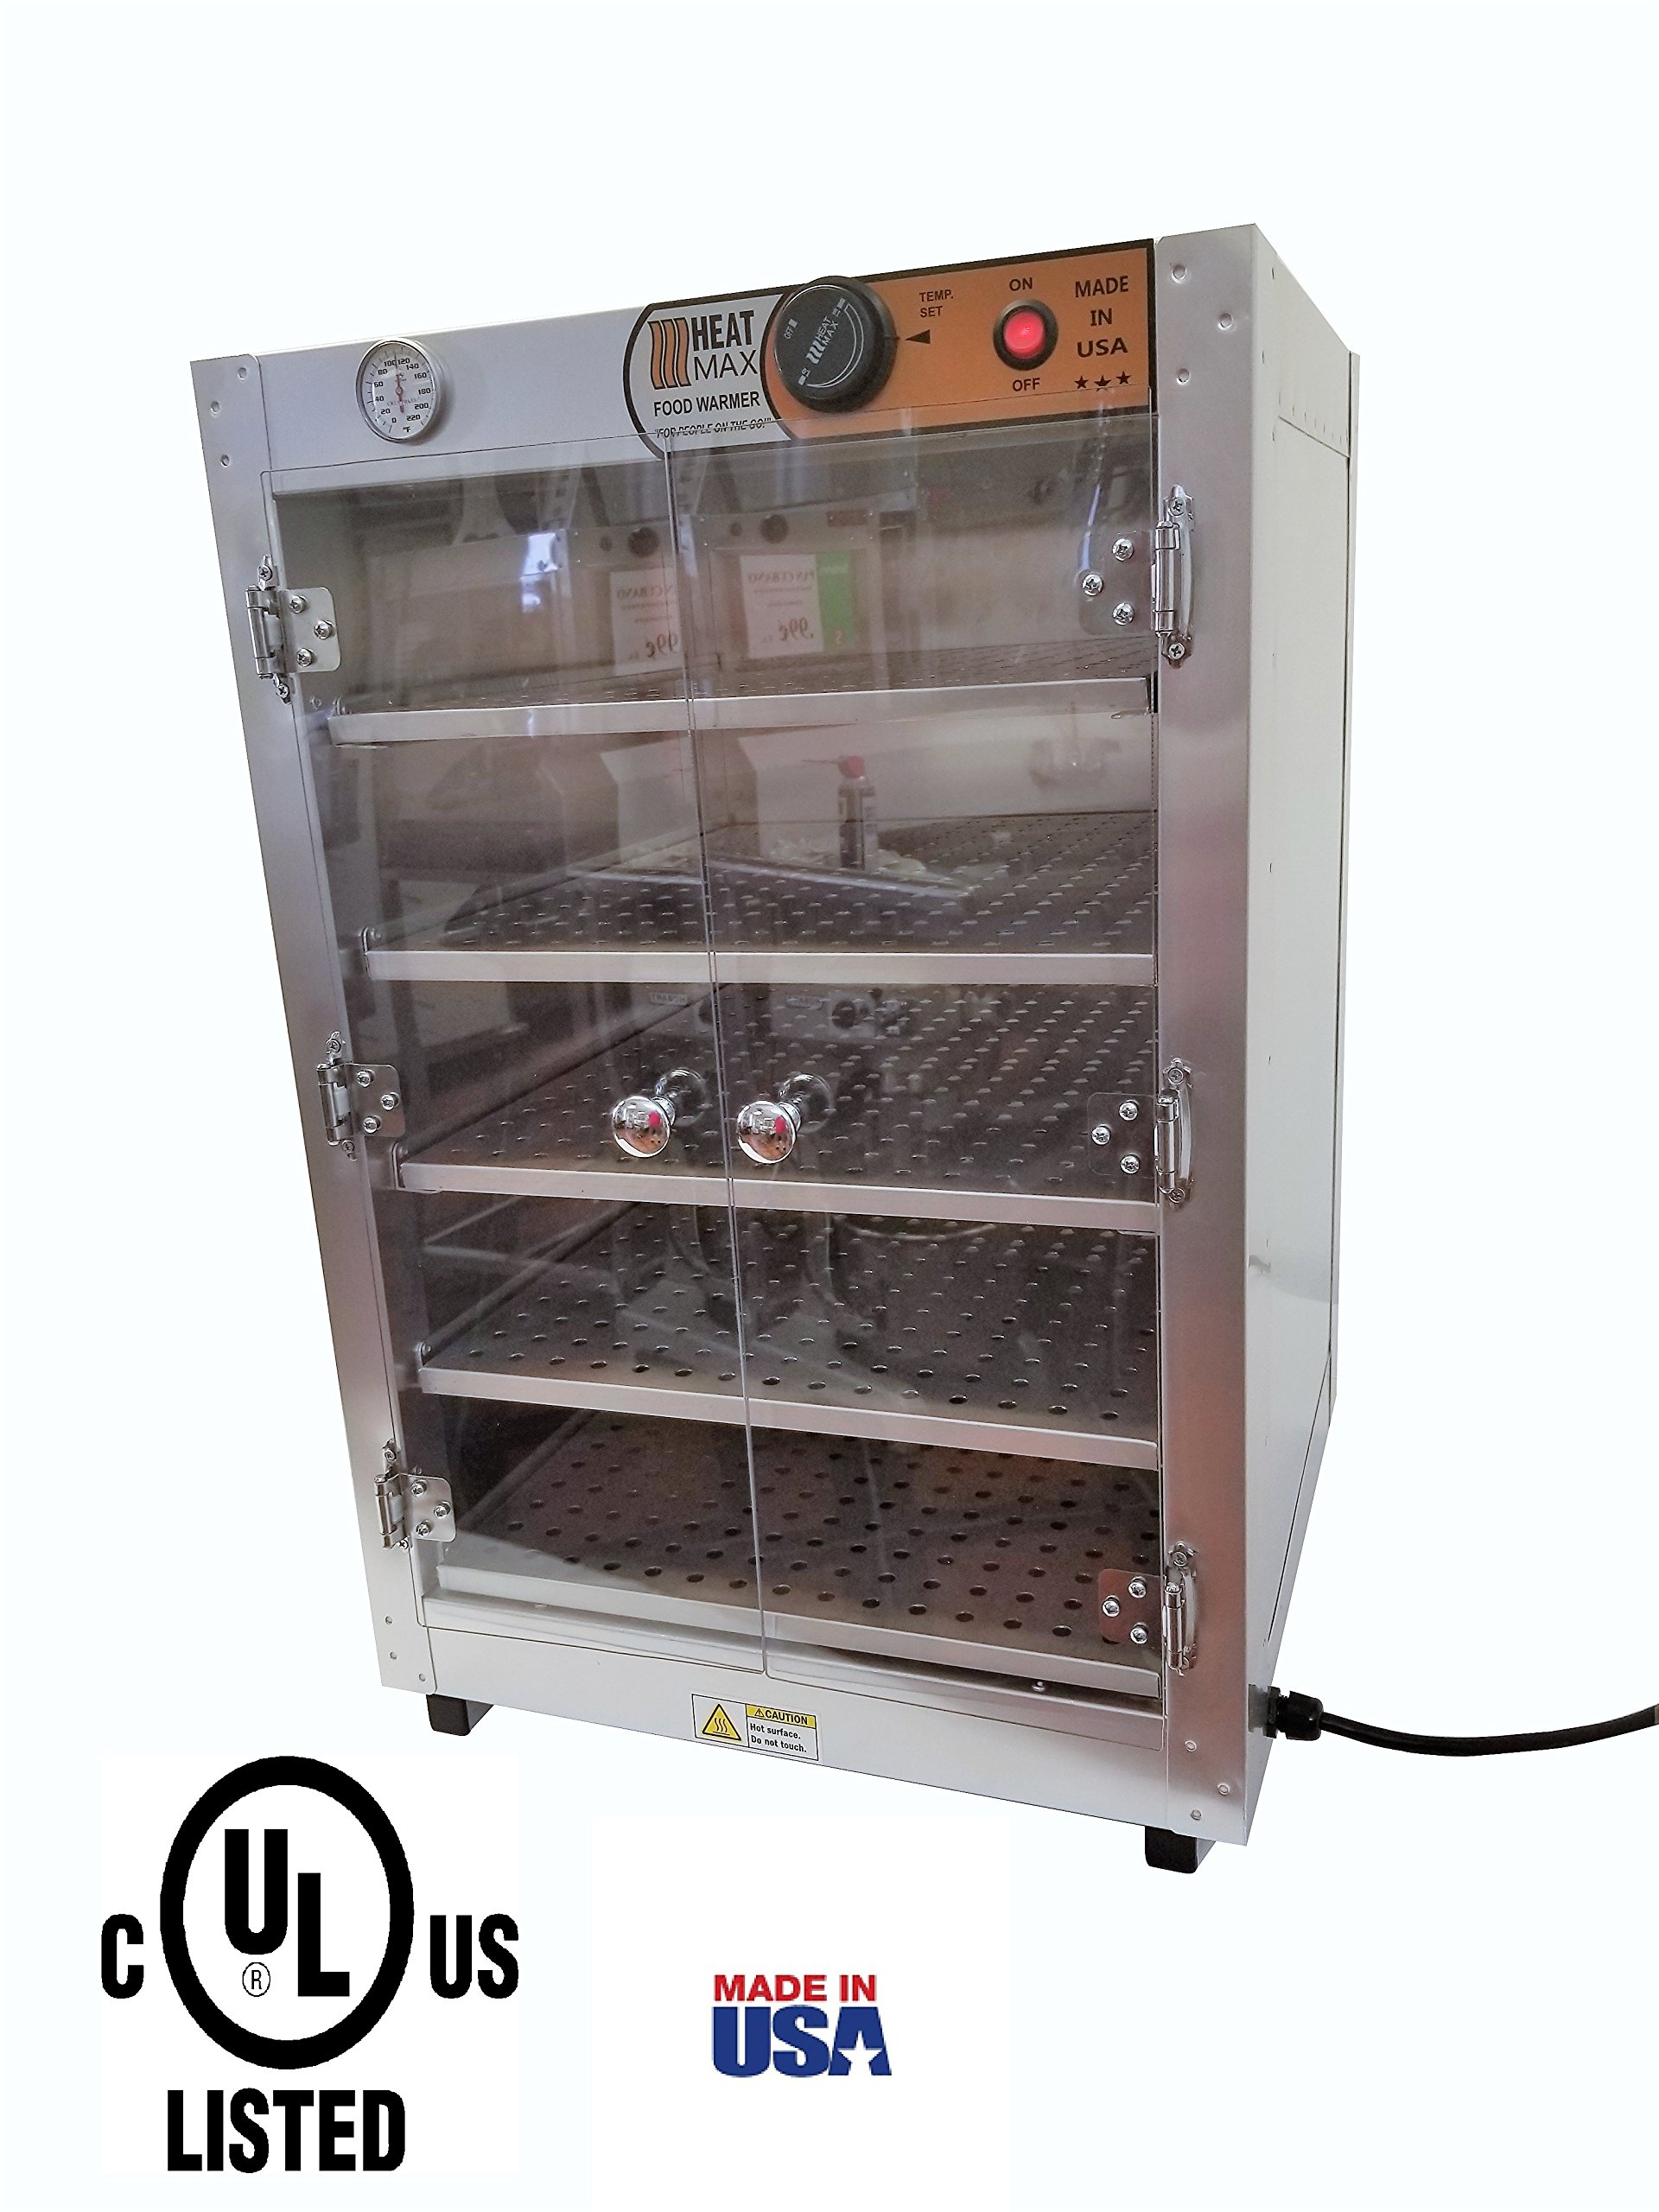 HeatMax 19x19x29 Commercial Food Pizza Pastry Patty Catering Hot Box Countertop Warmer Case by Heat Max